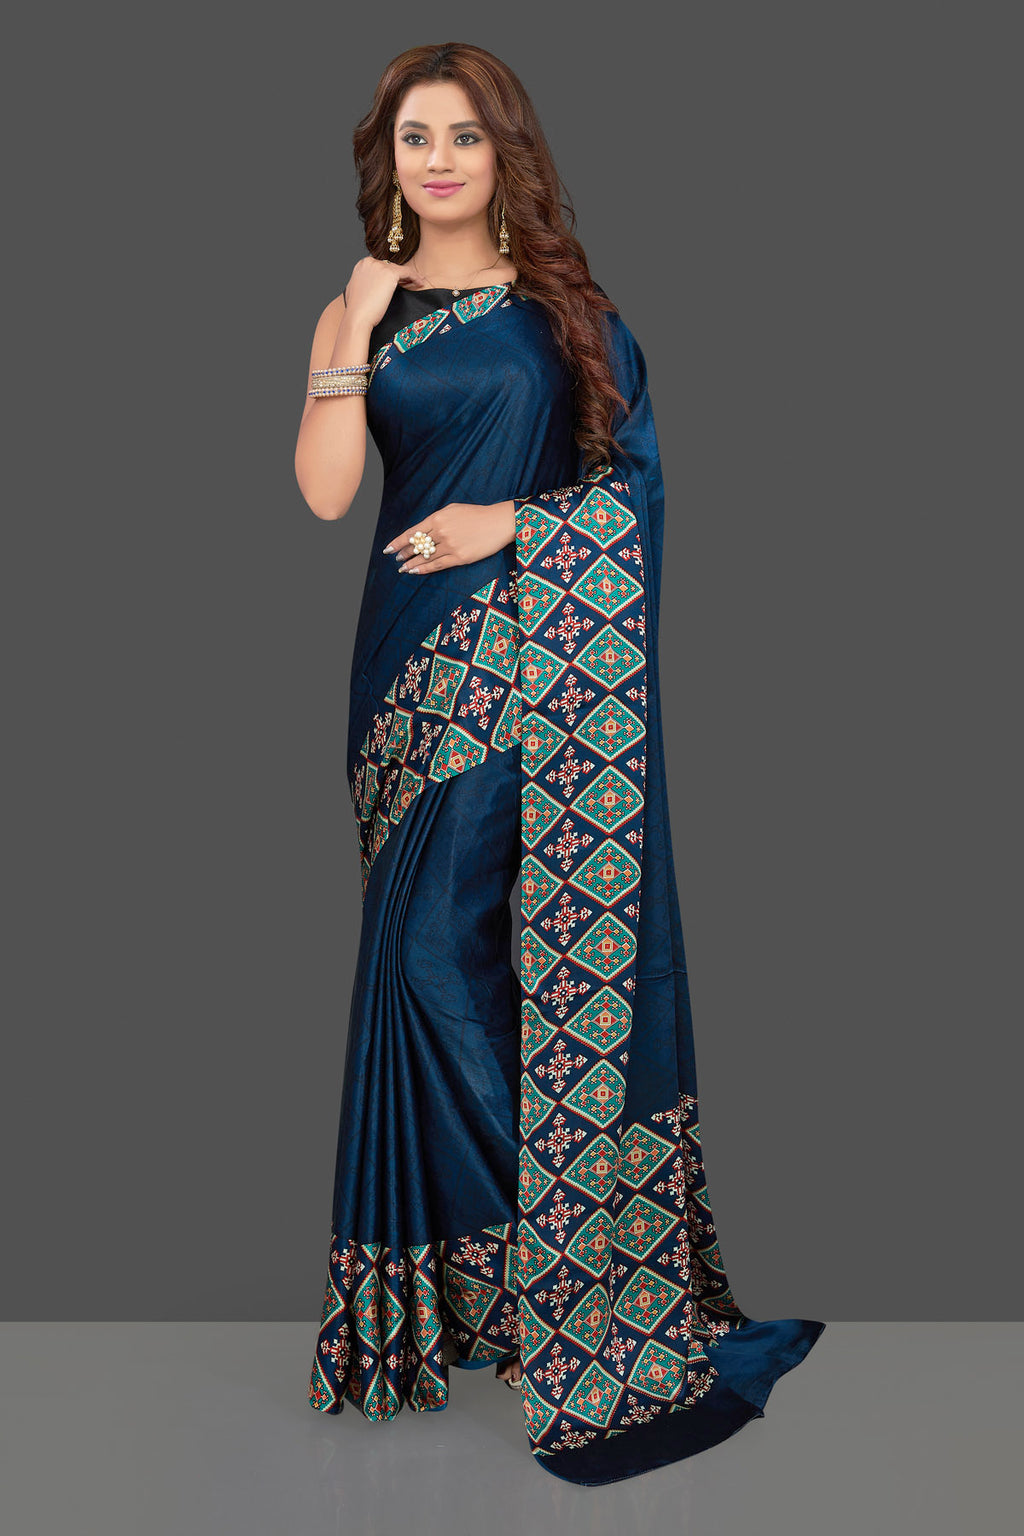 Buy dark blue crepe saree online in USA with colorful print border. Make you presence felt with your Indian style on special occasions in beautiful handloom sarees, pure silk sarees, crepe saris, printed saris from Pure Elegance Indian fashion store in USA.-full view